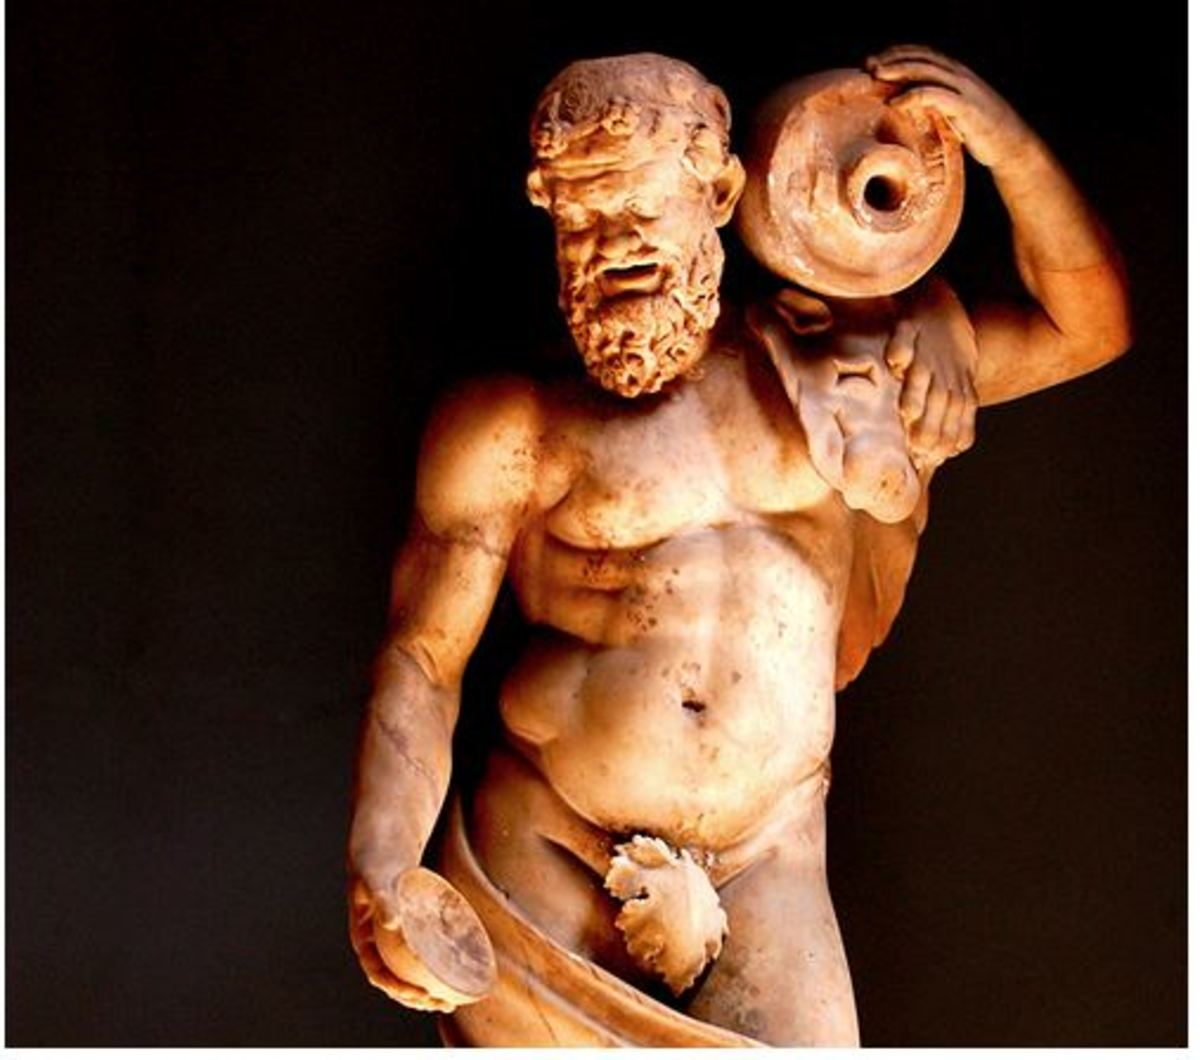 A very virile looking Bachus, still the god of wine